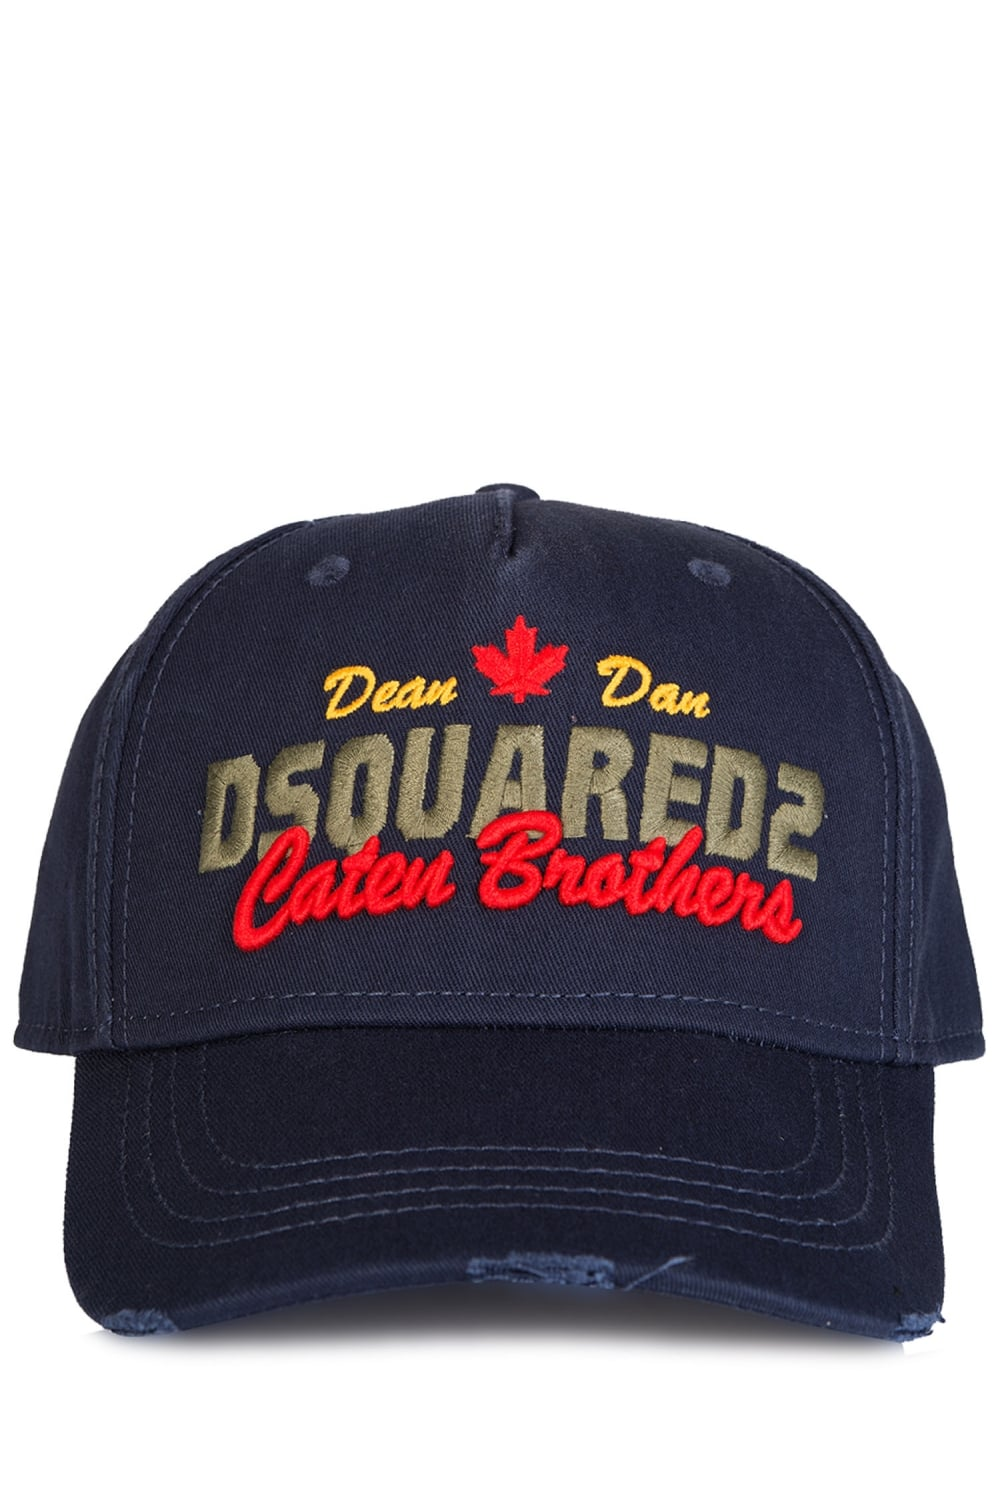 0eb098d7dae0eb Dsquared Caten Brothers Baseball Cap Navy